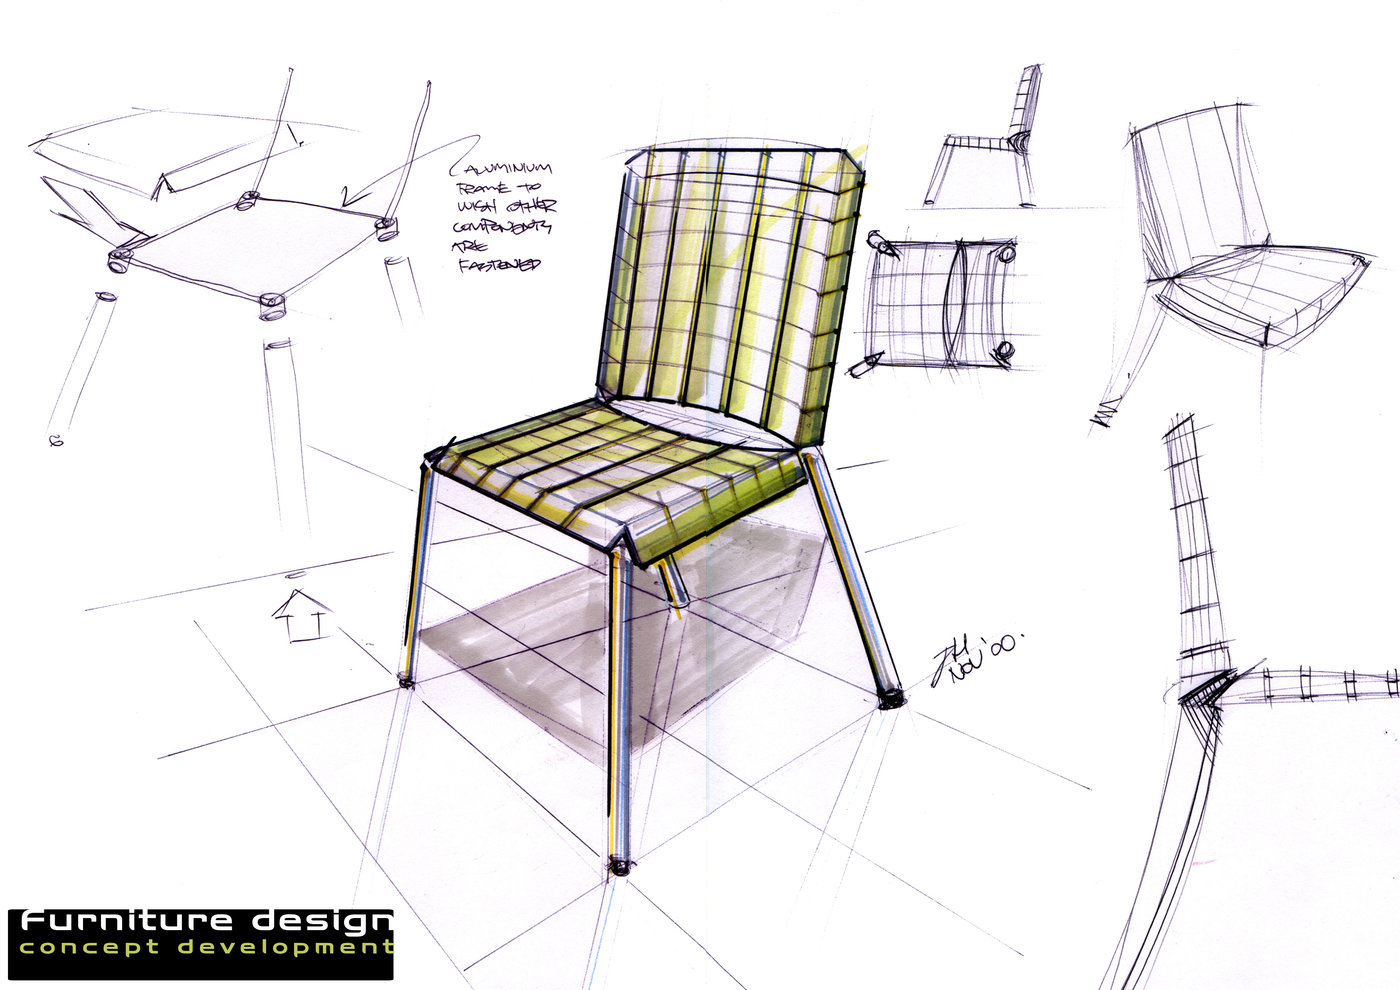 chair design solidworks office max chairs product and furniture by joshua hakman at coroflot